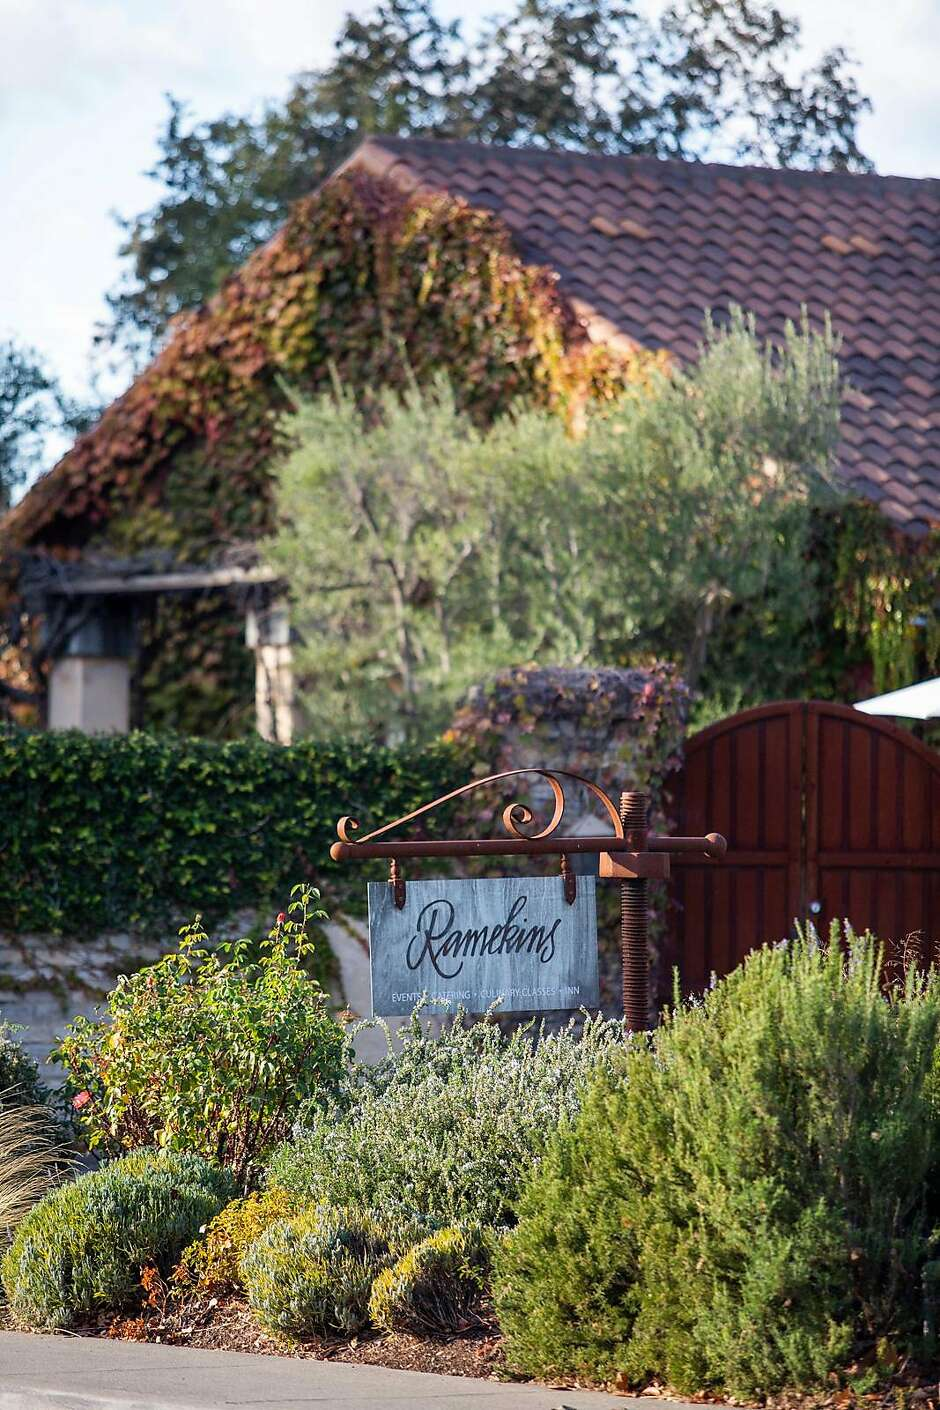 Sonoma's Best Hospitality Group catered and hosted large weddings at Ramekins, an inn, culinary school and catering company in Sonoma, according to documents.